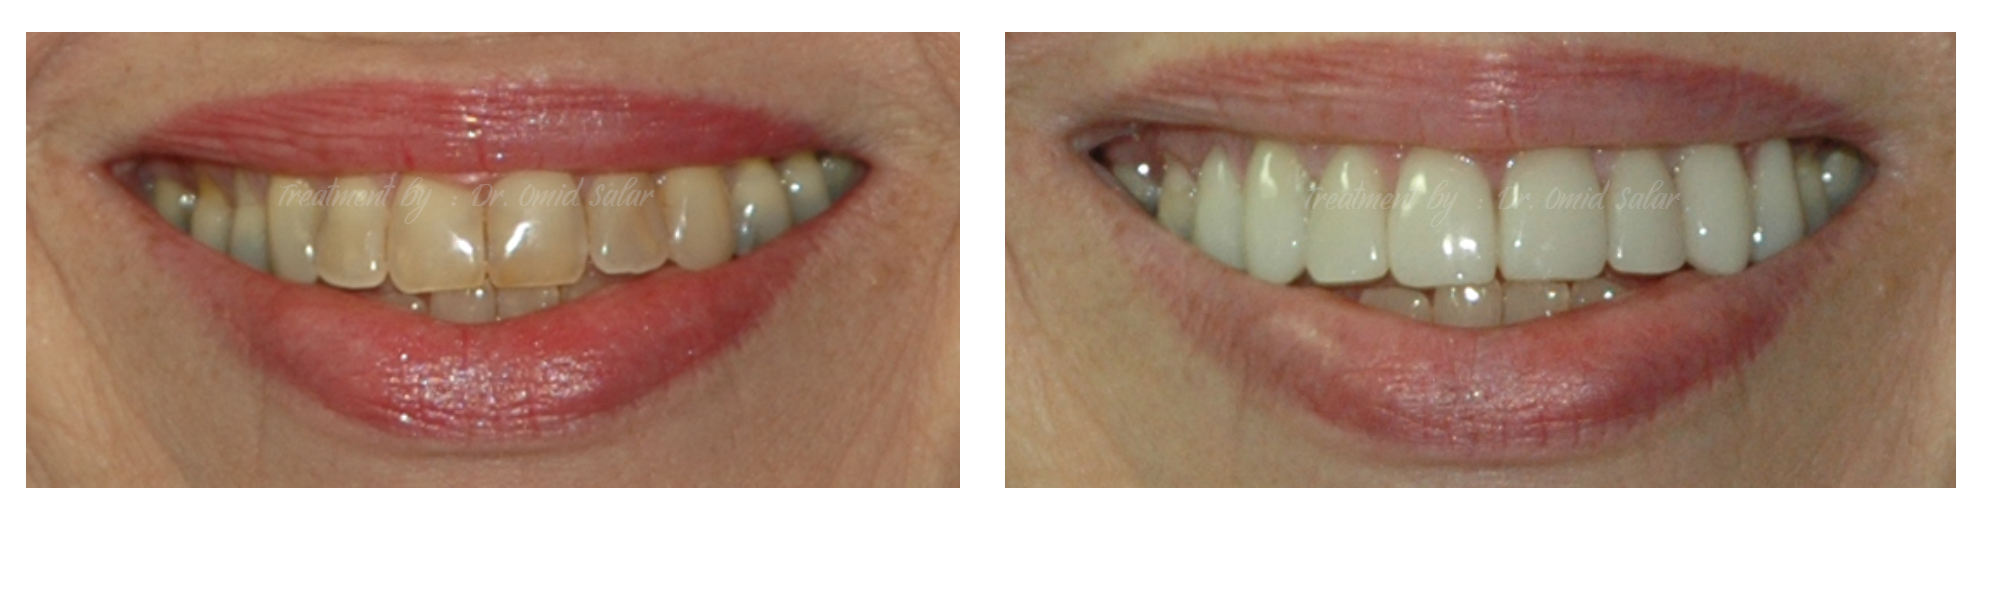 Porcelain Veneers - Smile